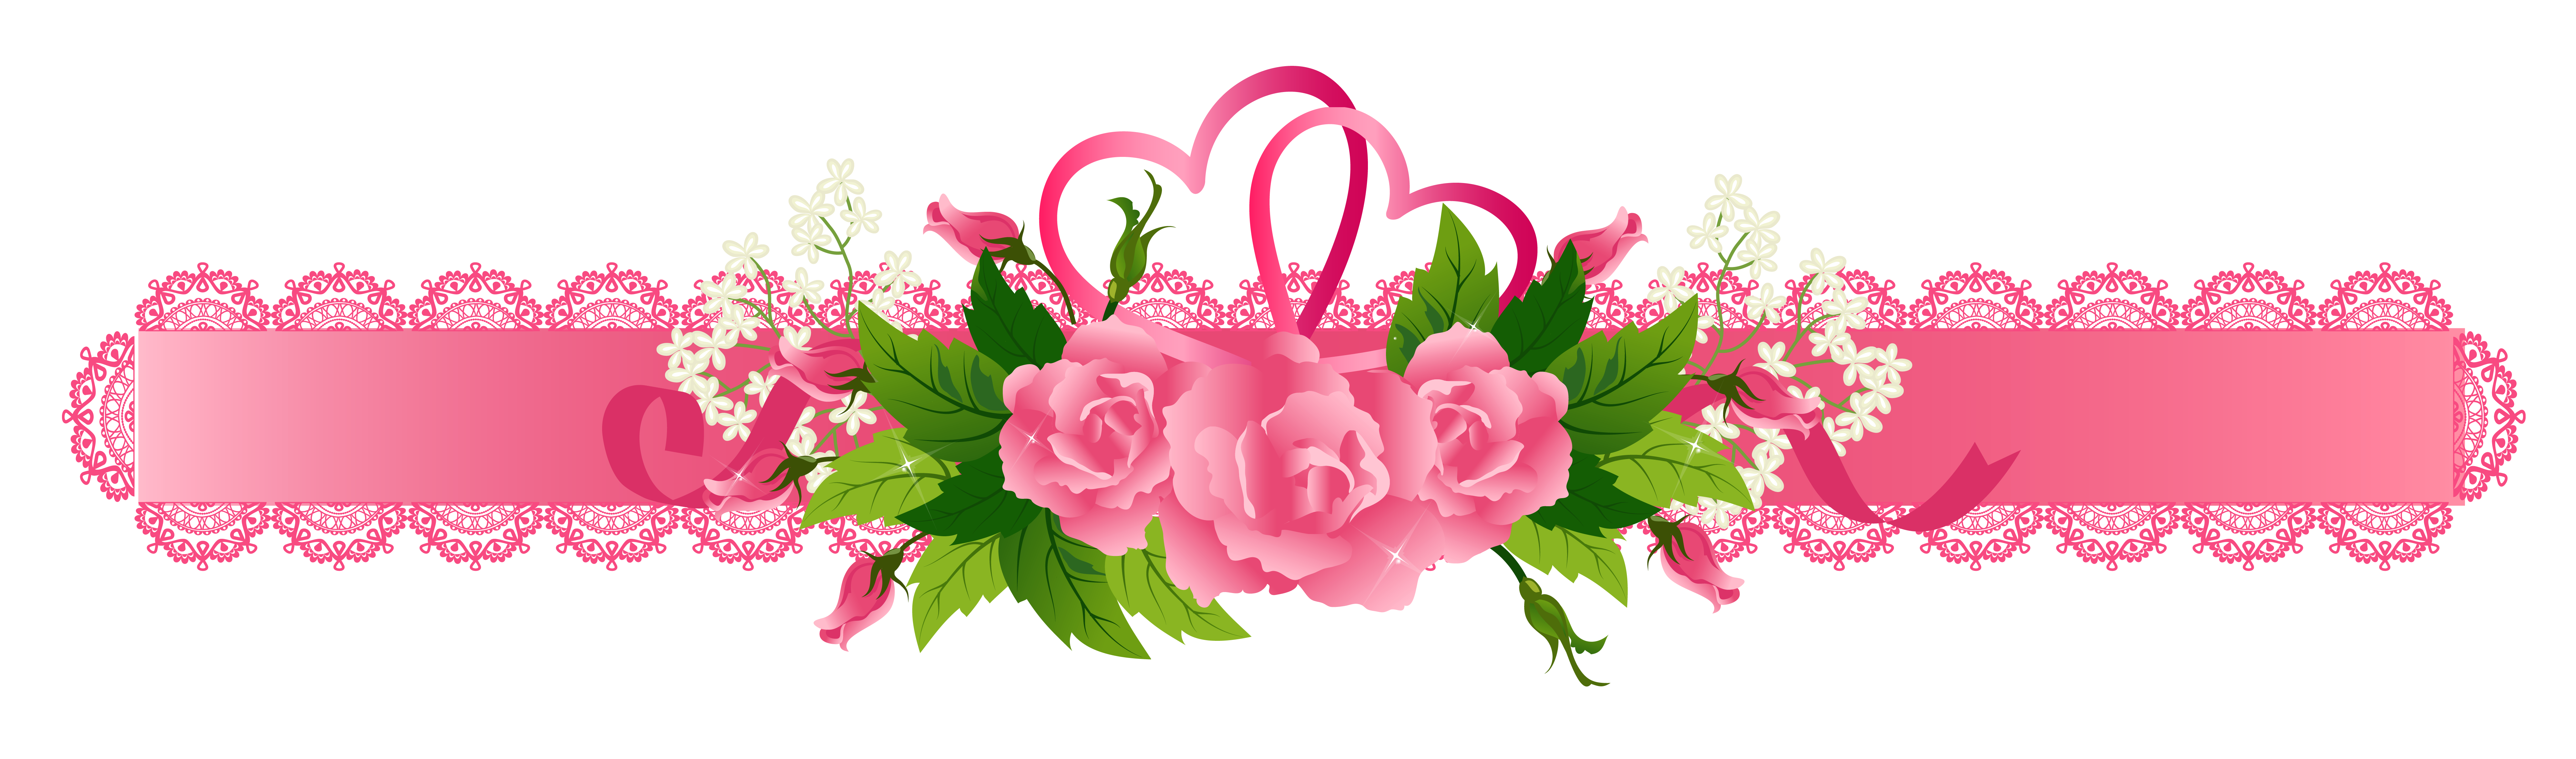 Rose banner png. Decorative pink ribbon with